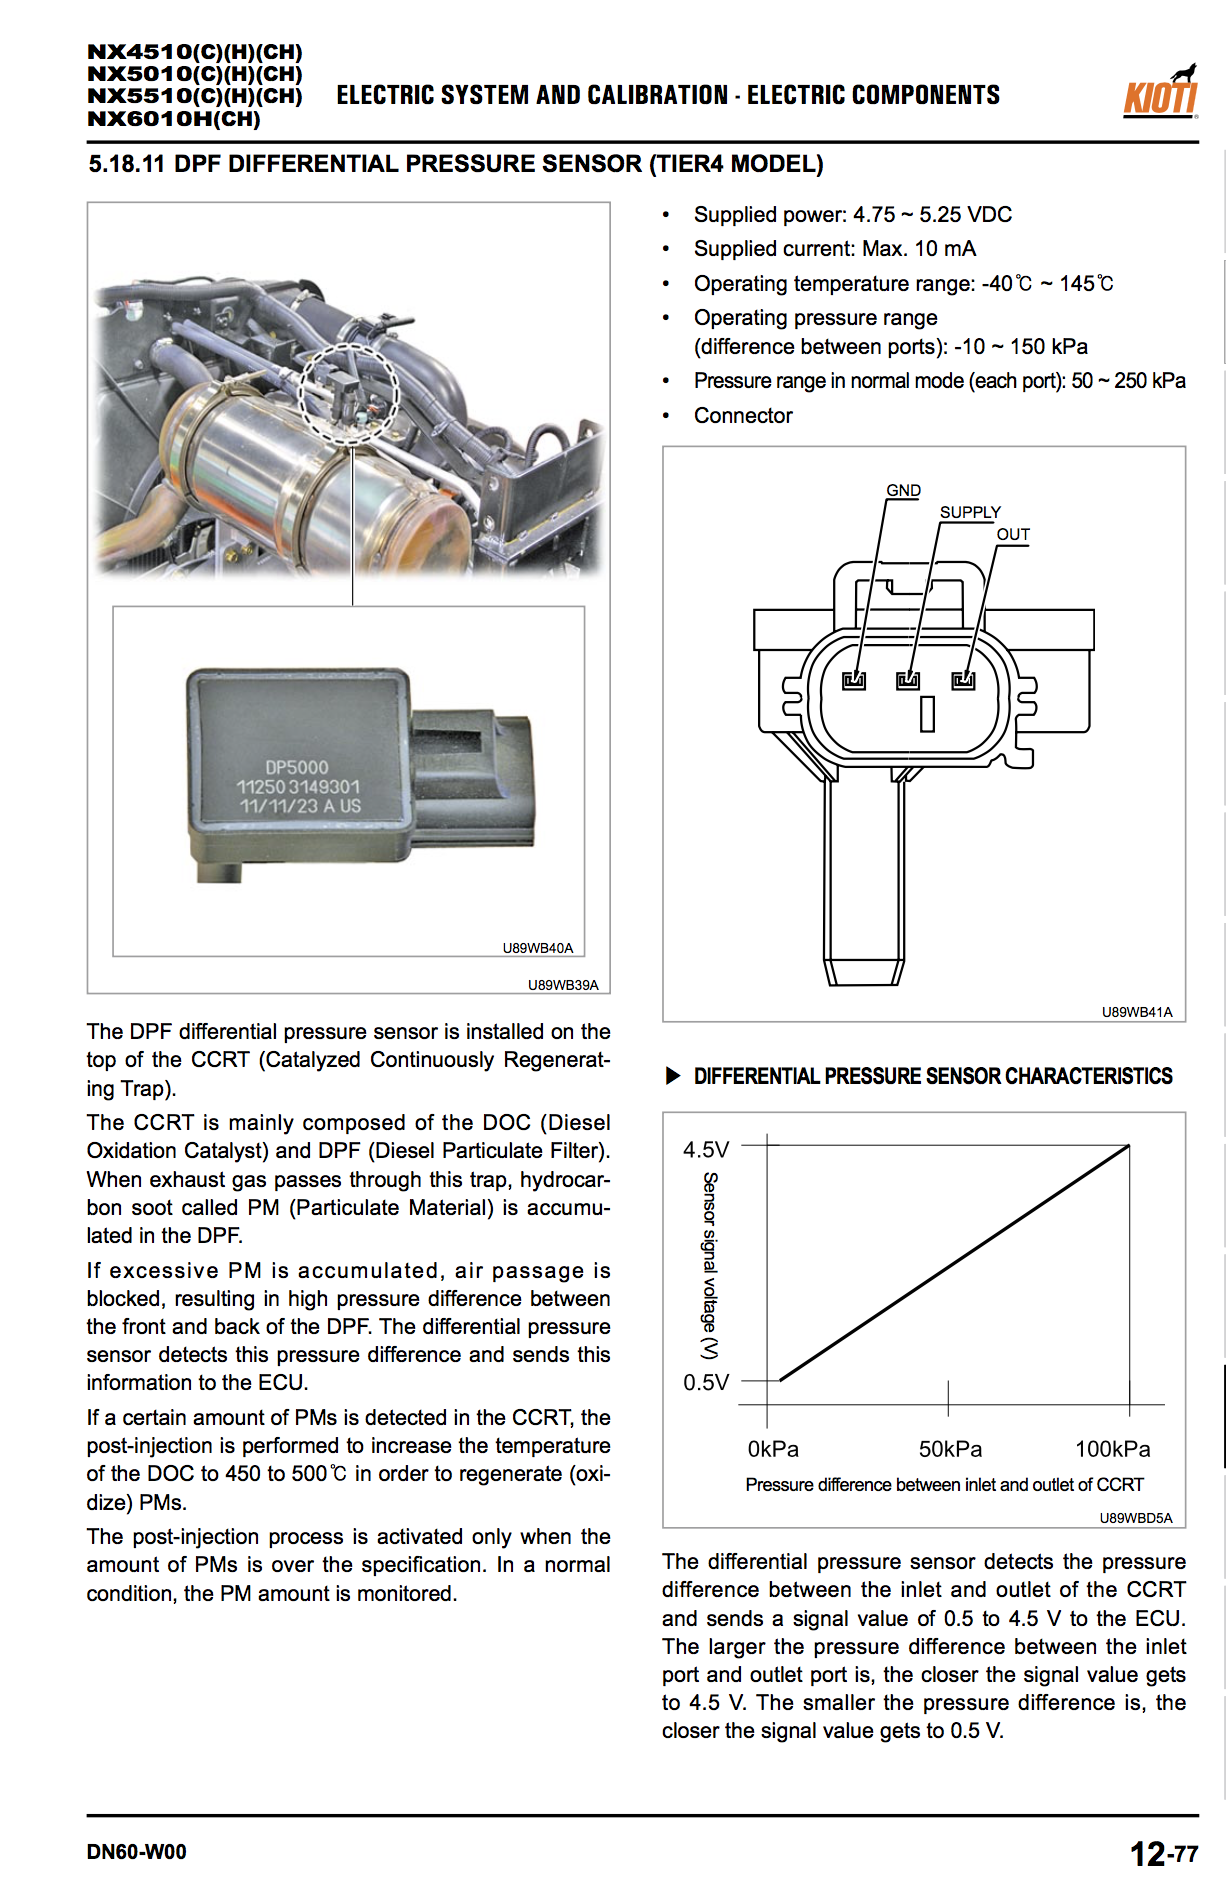 Kioti Tractor Tuning Page 2 Programmable Pressure Transducer Circuit And Here A Theretical Way To Build In Place Of The Sensor Unfortunately Analog Behavioral Modeling Is Little Beyond My Current